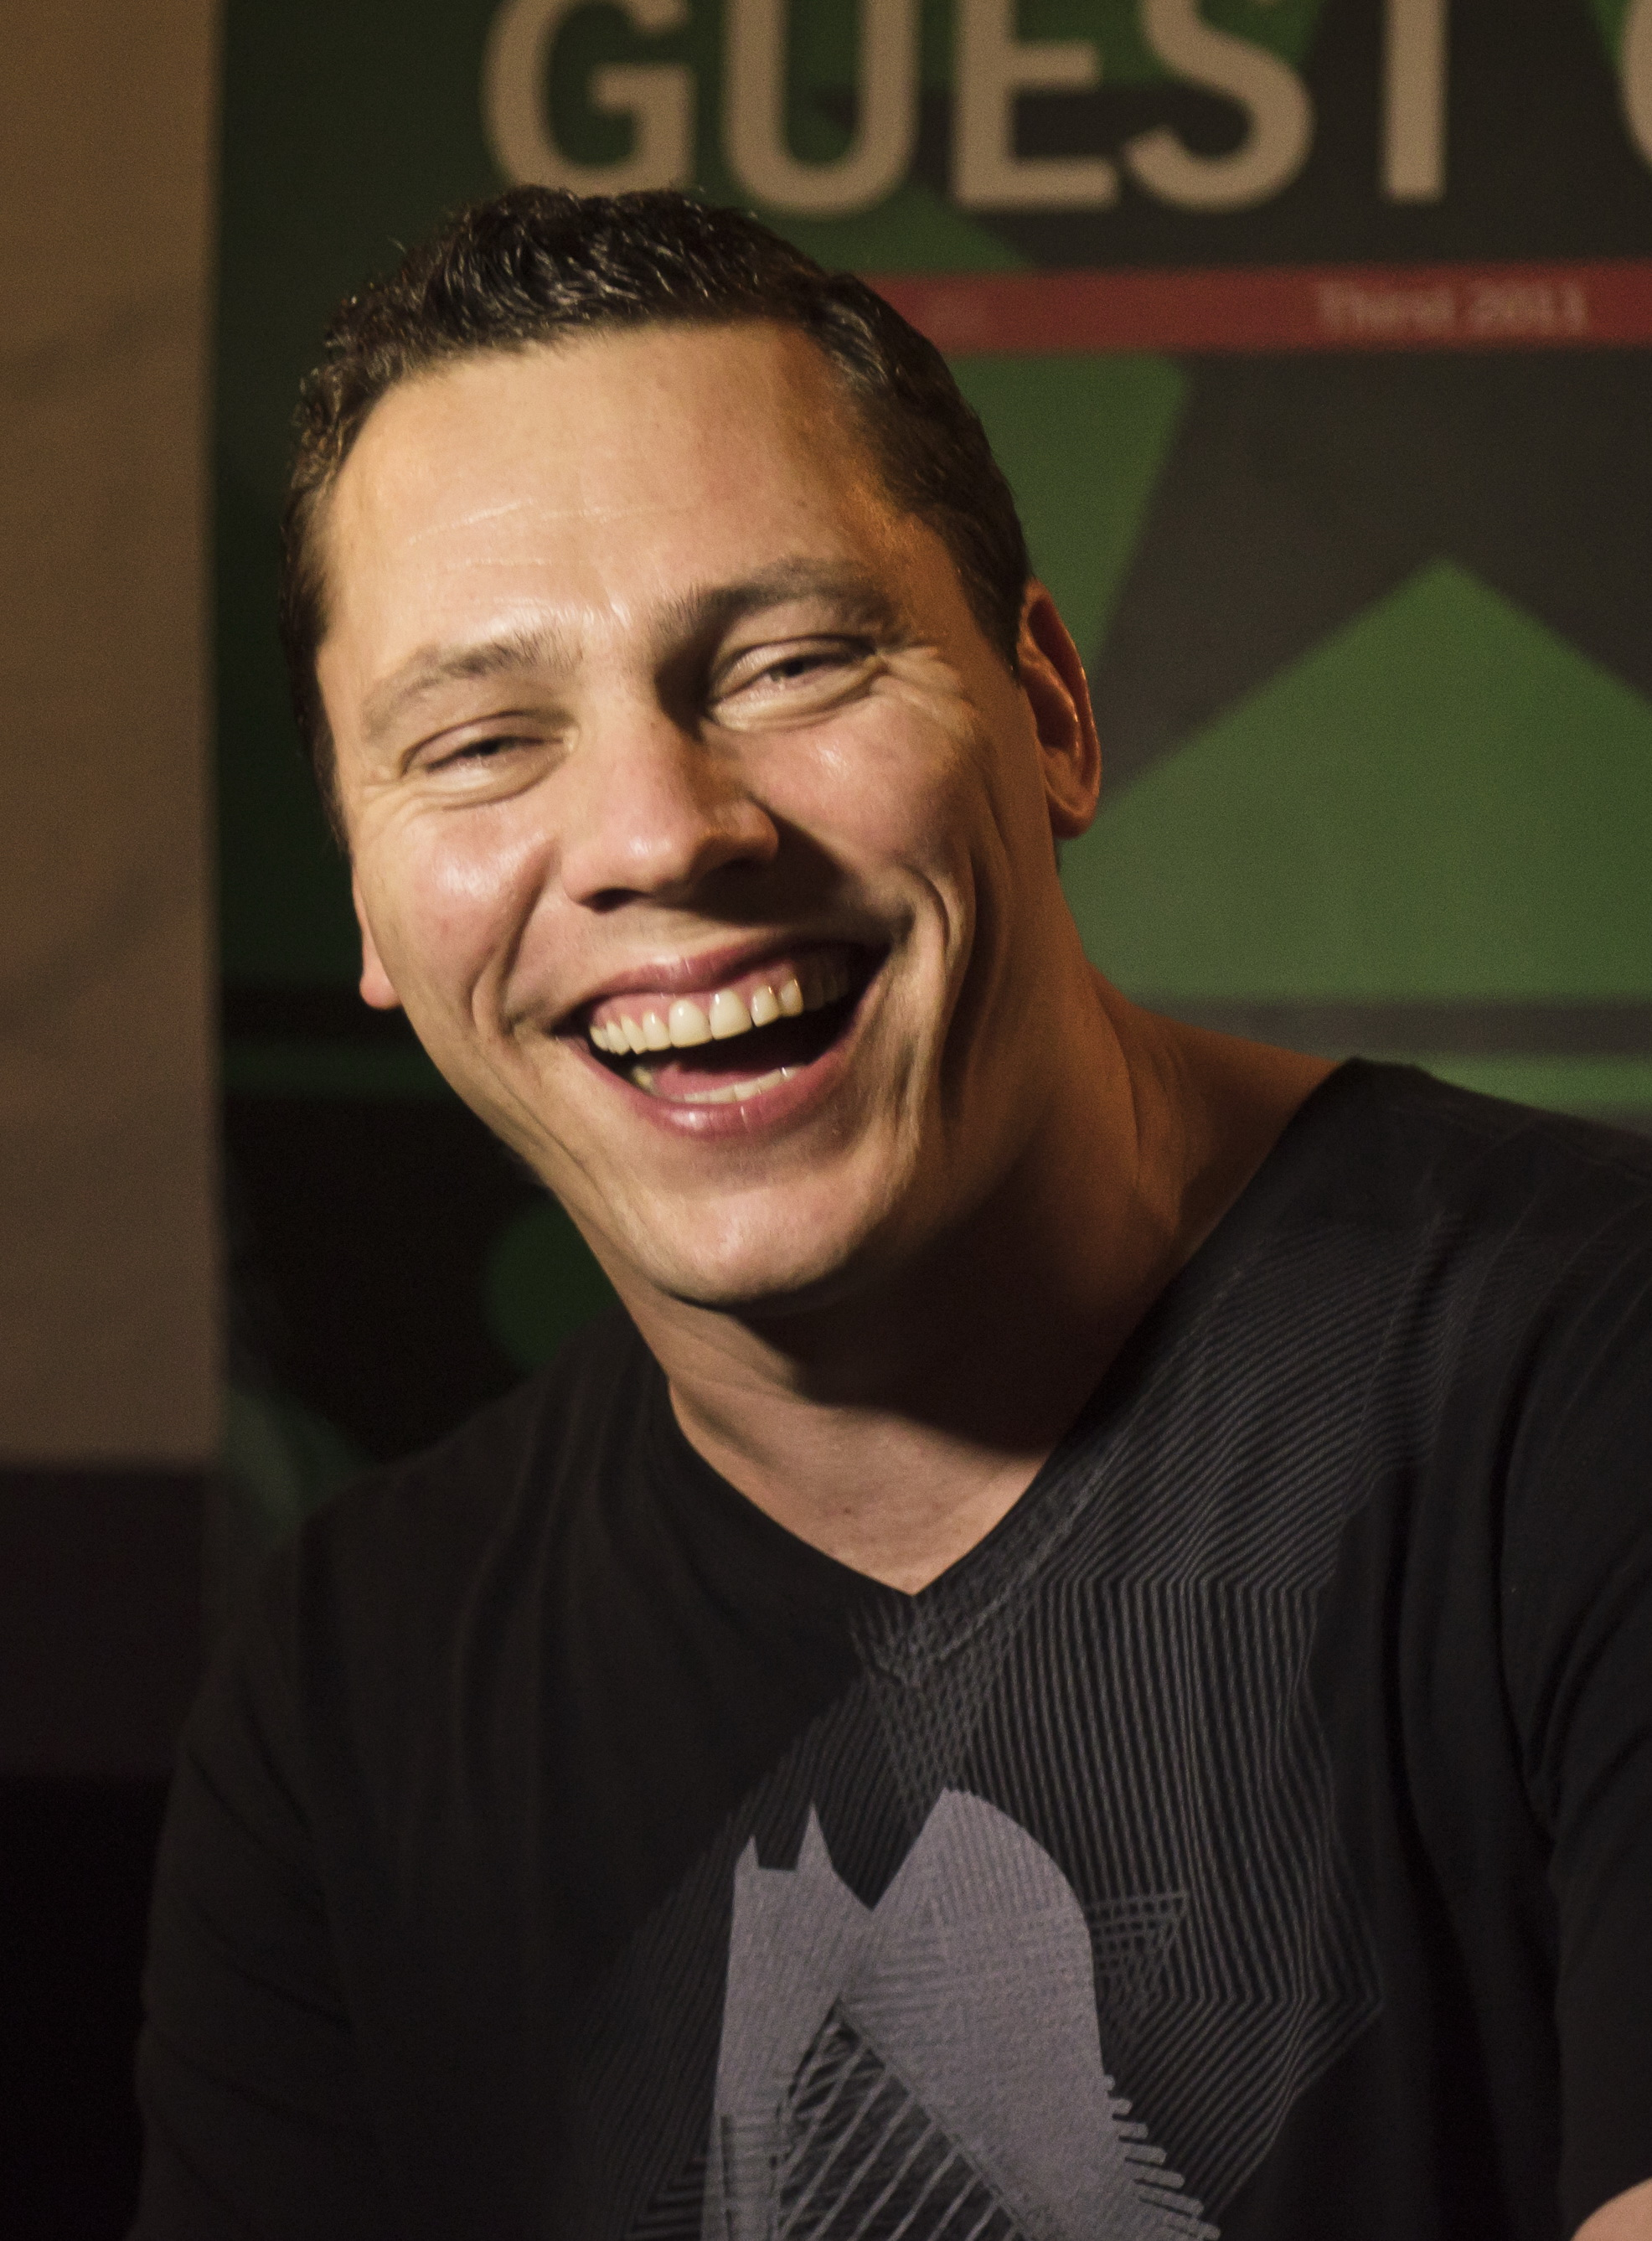 Tiesto Net Worth 2019: Money, Salary, Bio | CelebsMoney